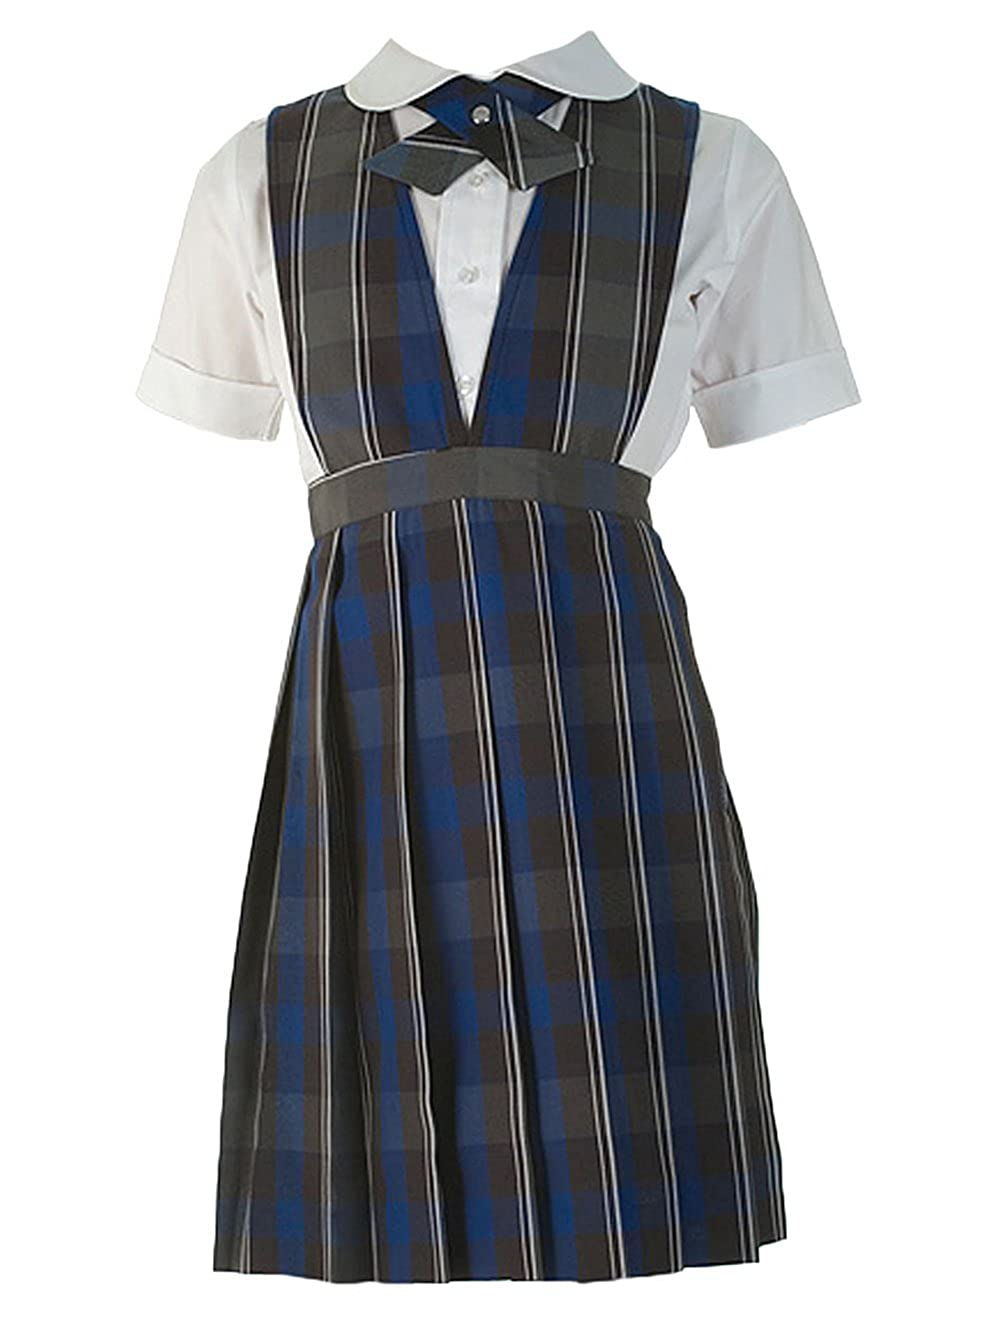 Cookie's Brand Little Girls' Jumper - gray/royal/whiteplaid #62, 6x Cookie' s Brand